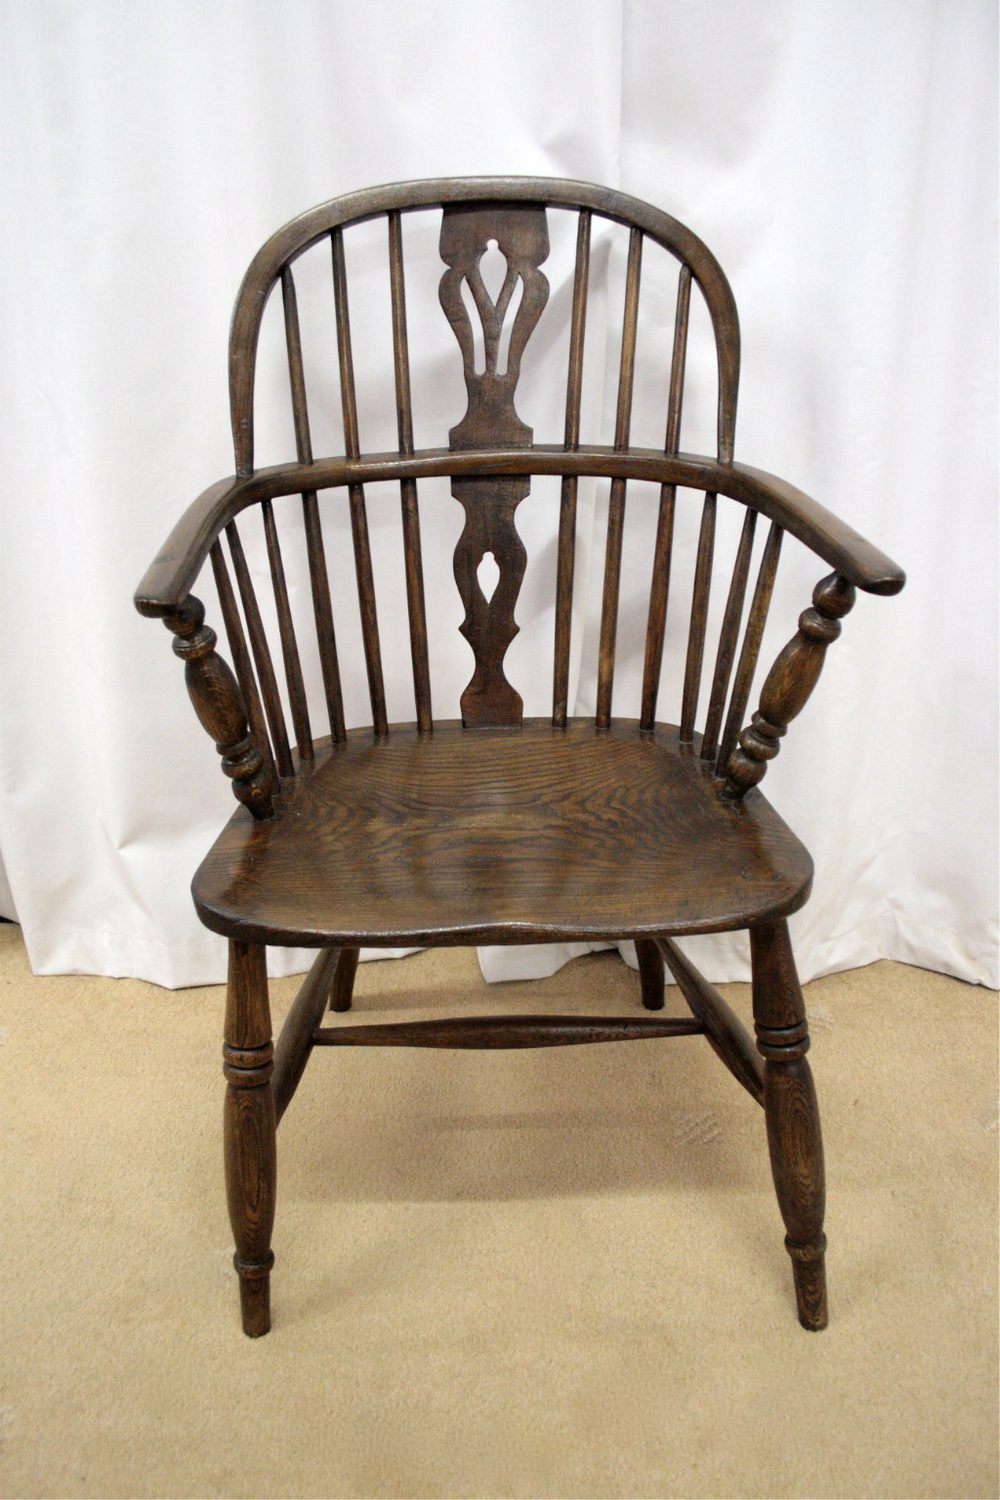 19th Century Windsor Chair - Antiques Atlas